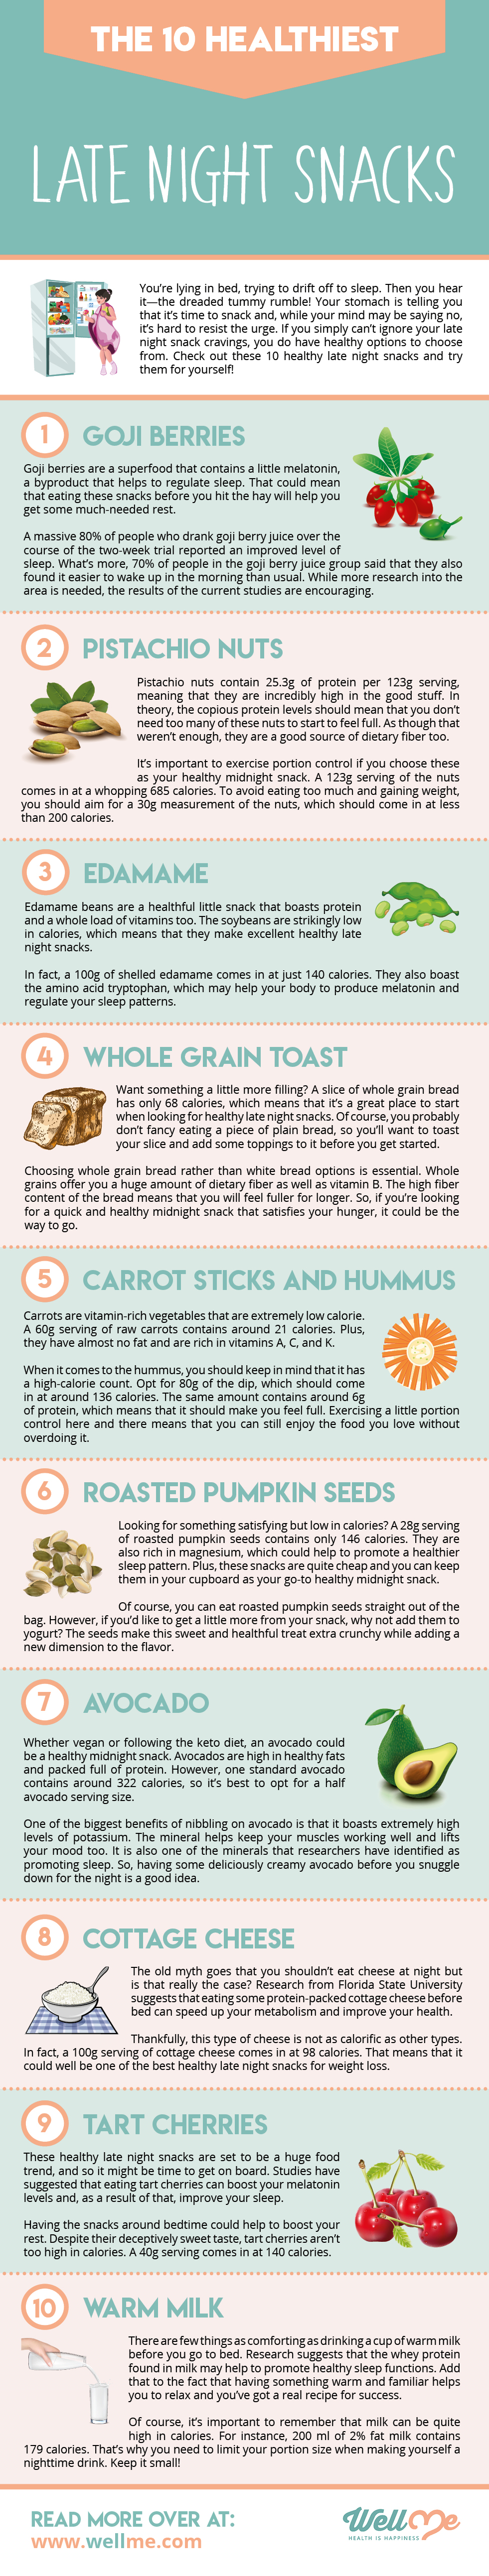 The 10 Healthiest Late Night Snacks Infographic